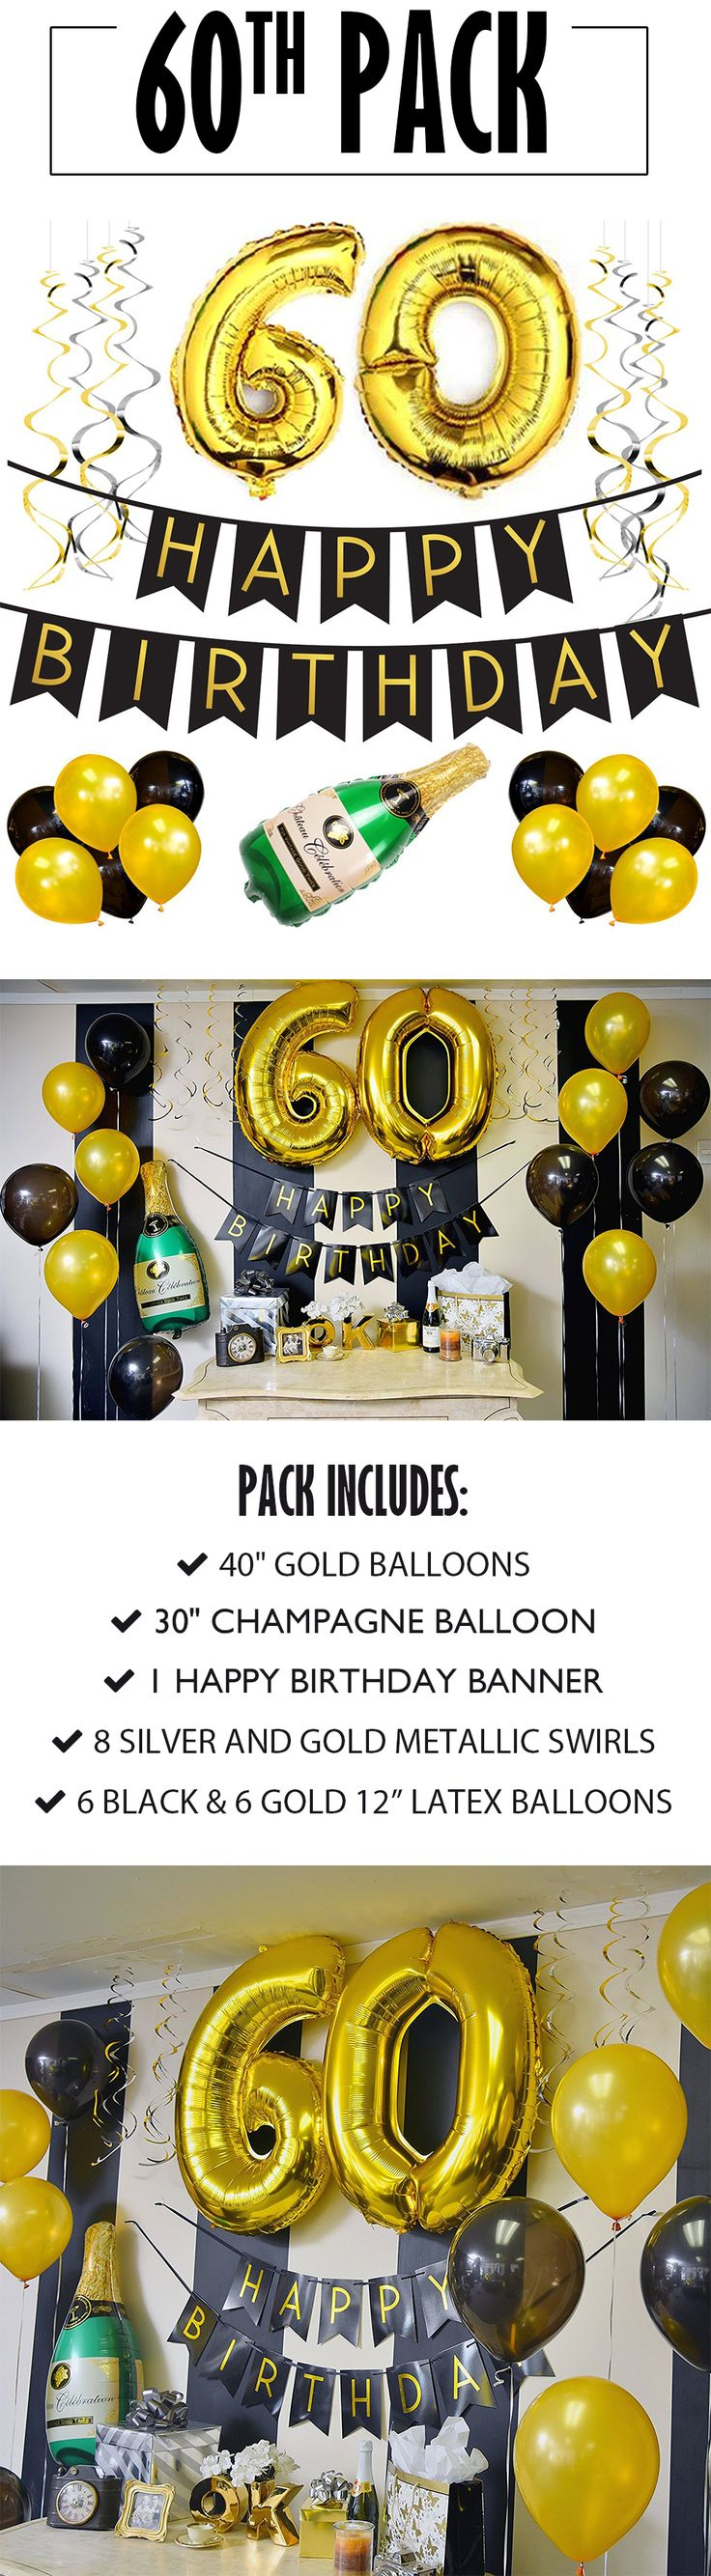 60th Birthday Banner and Balloon Pack!